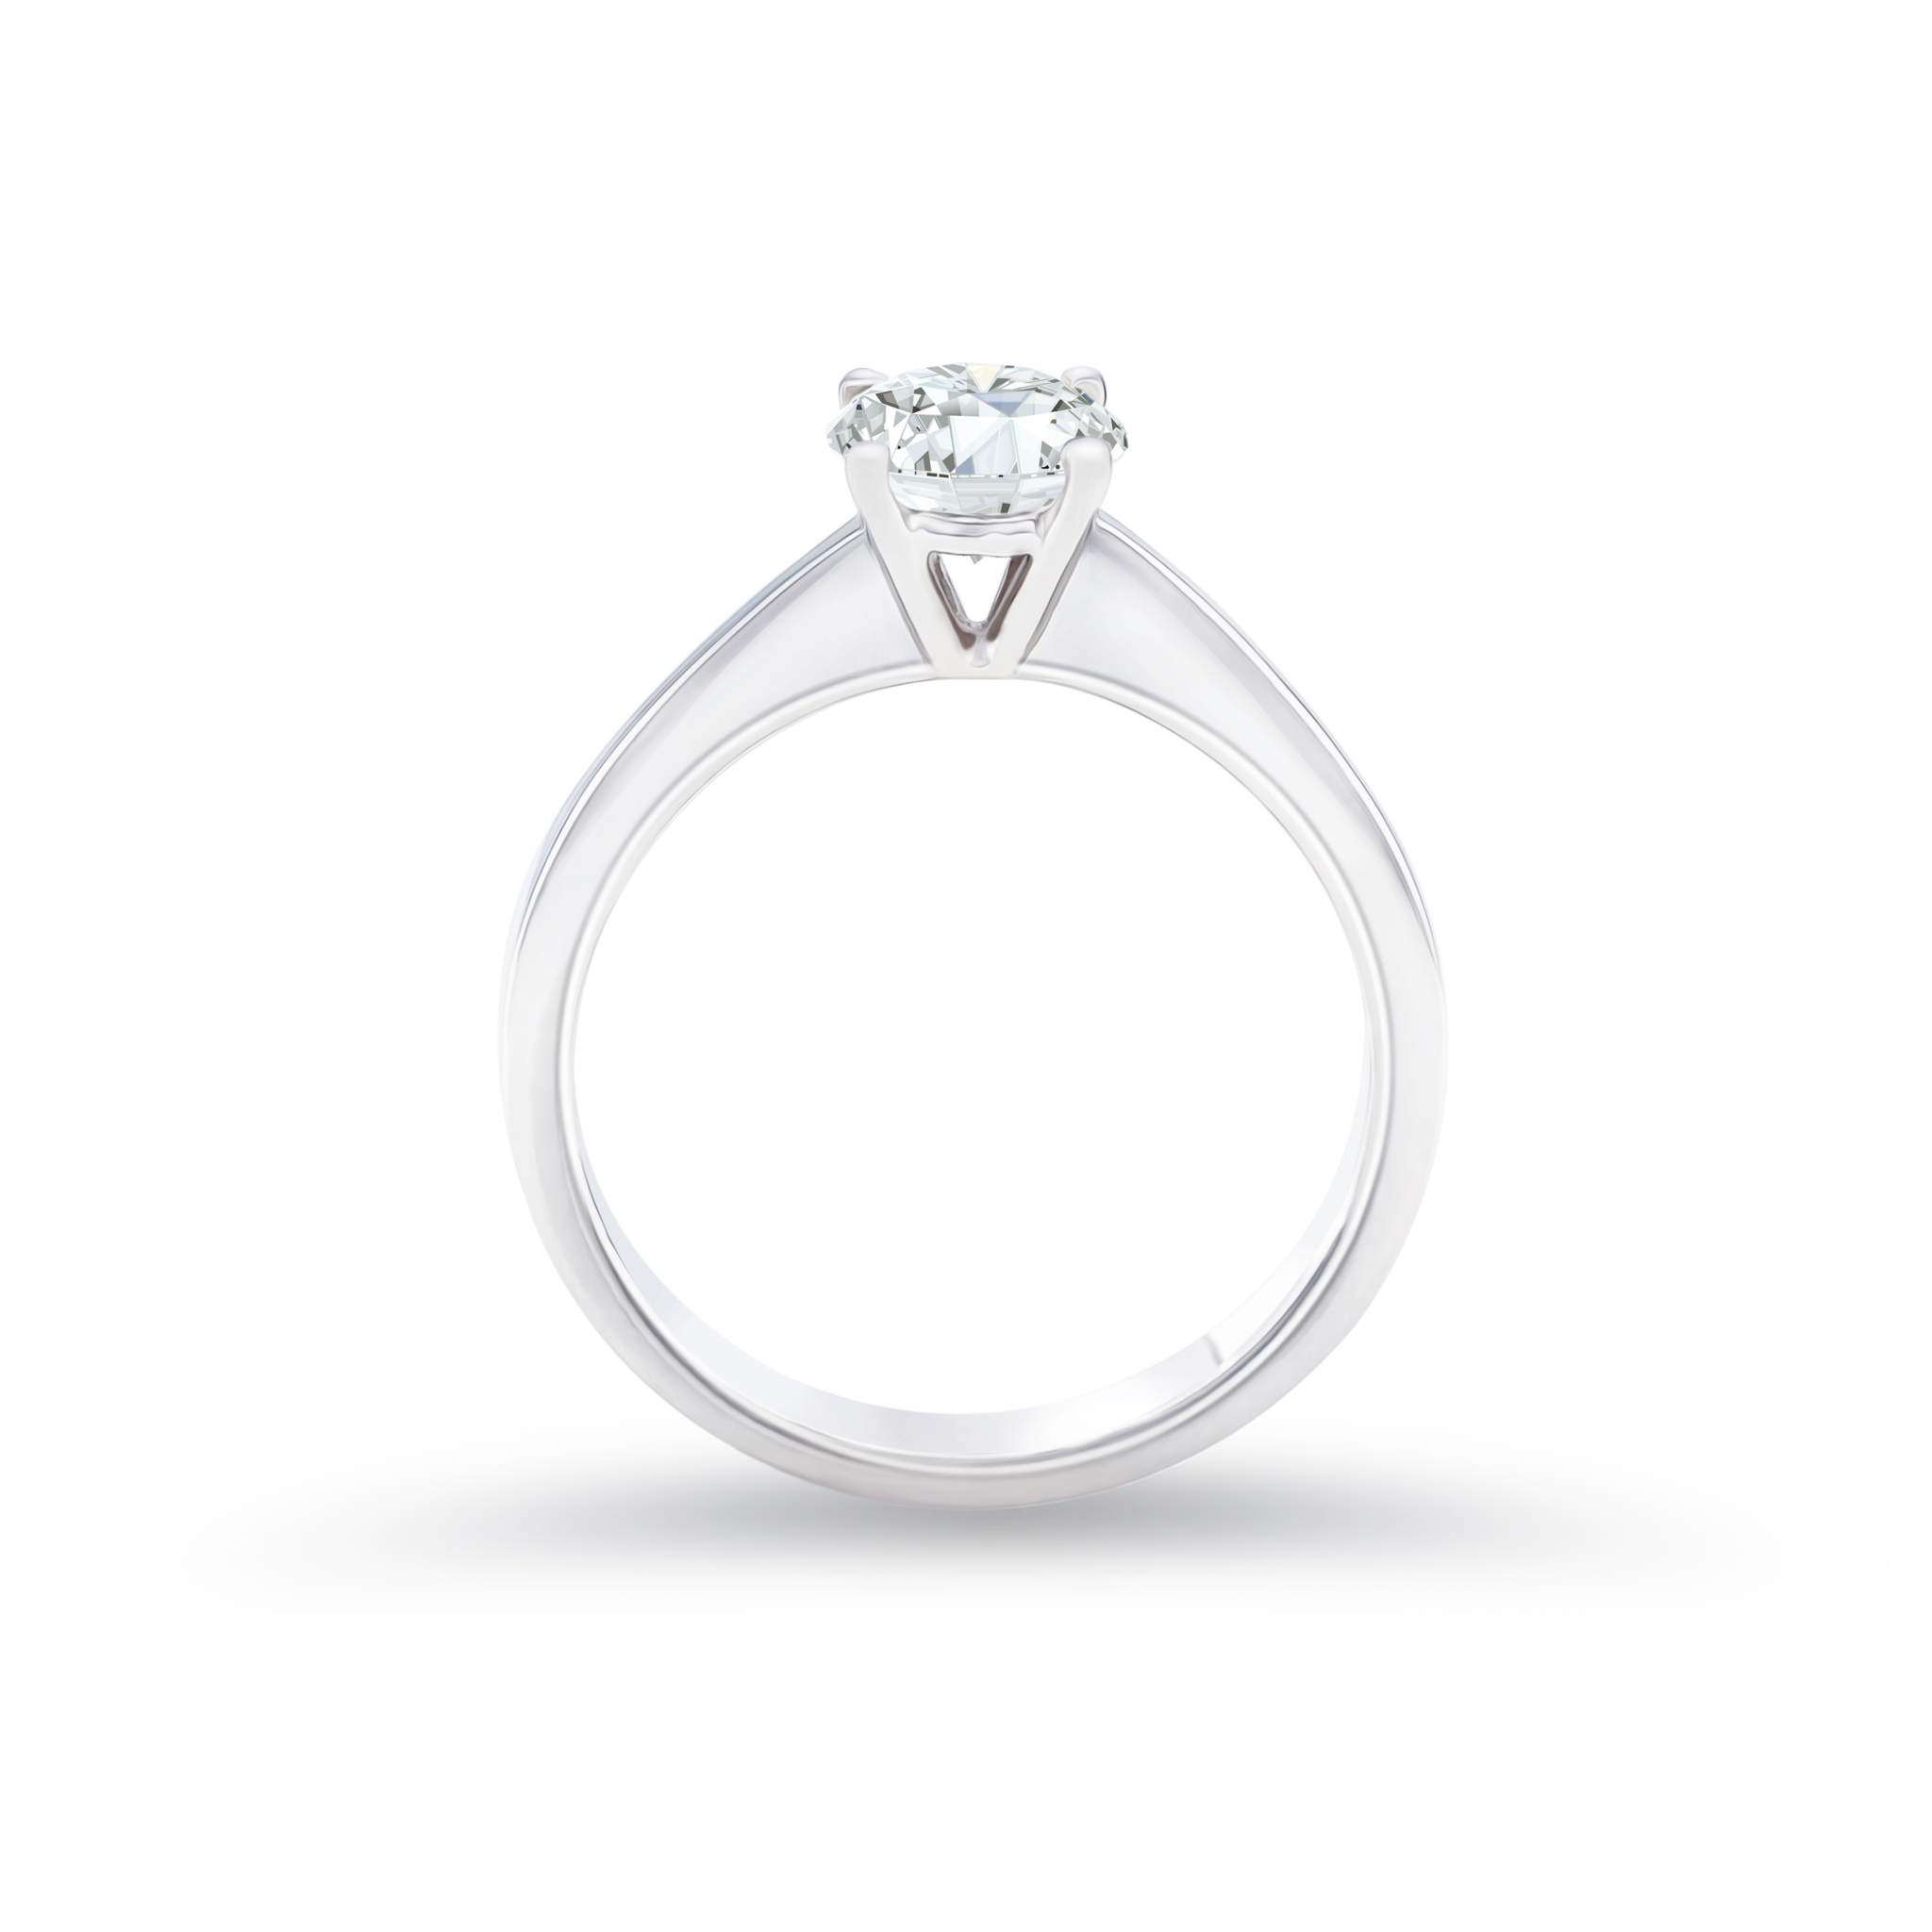 Drawing gold diamond. Certified round shaped solitaire